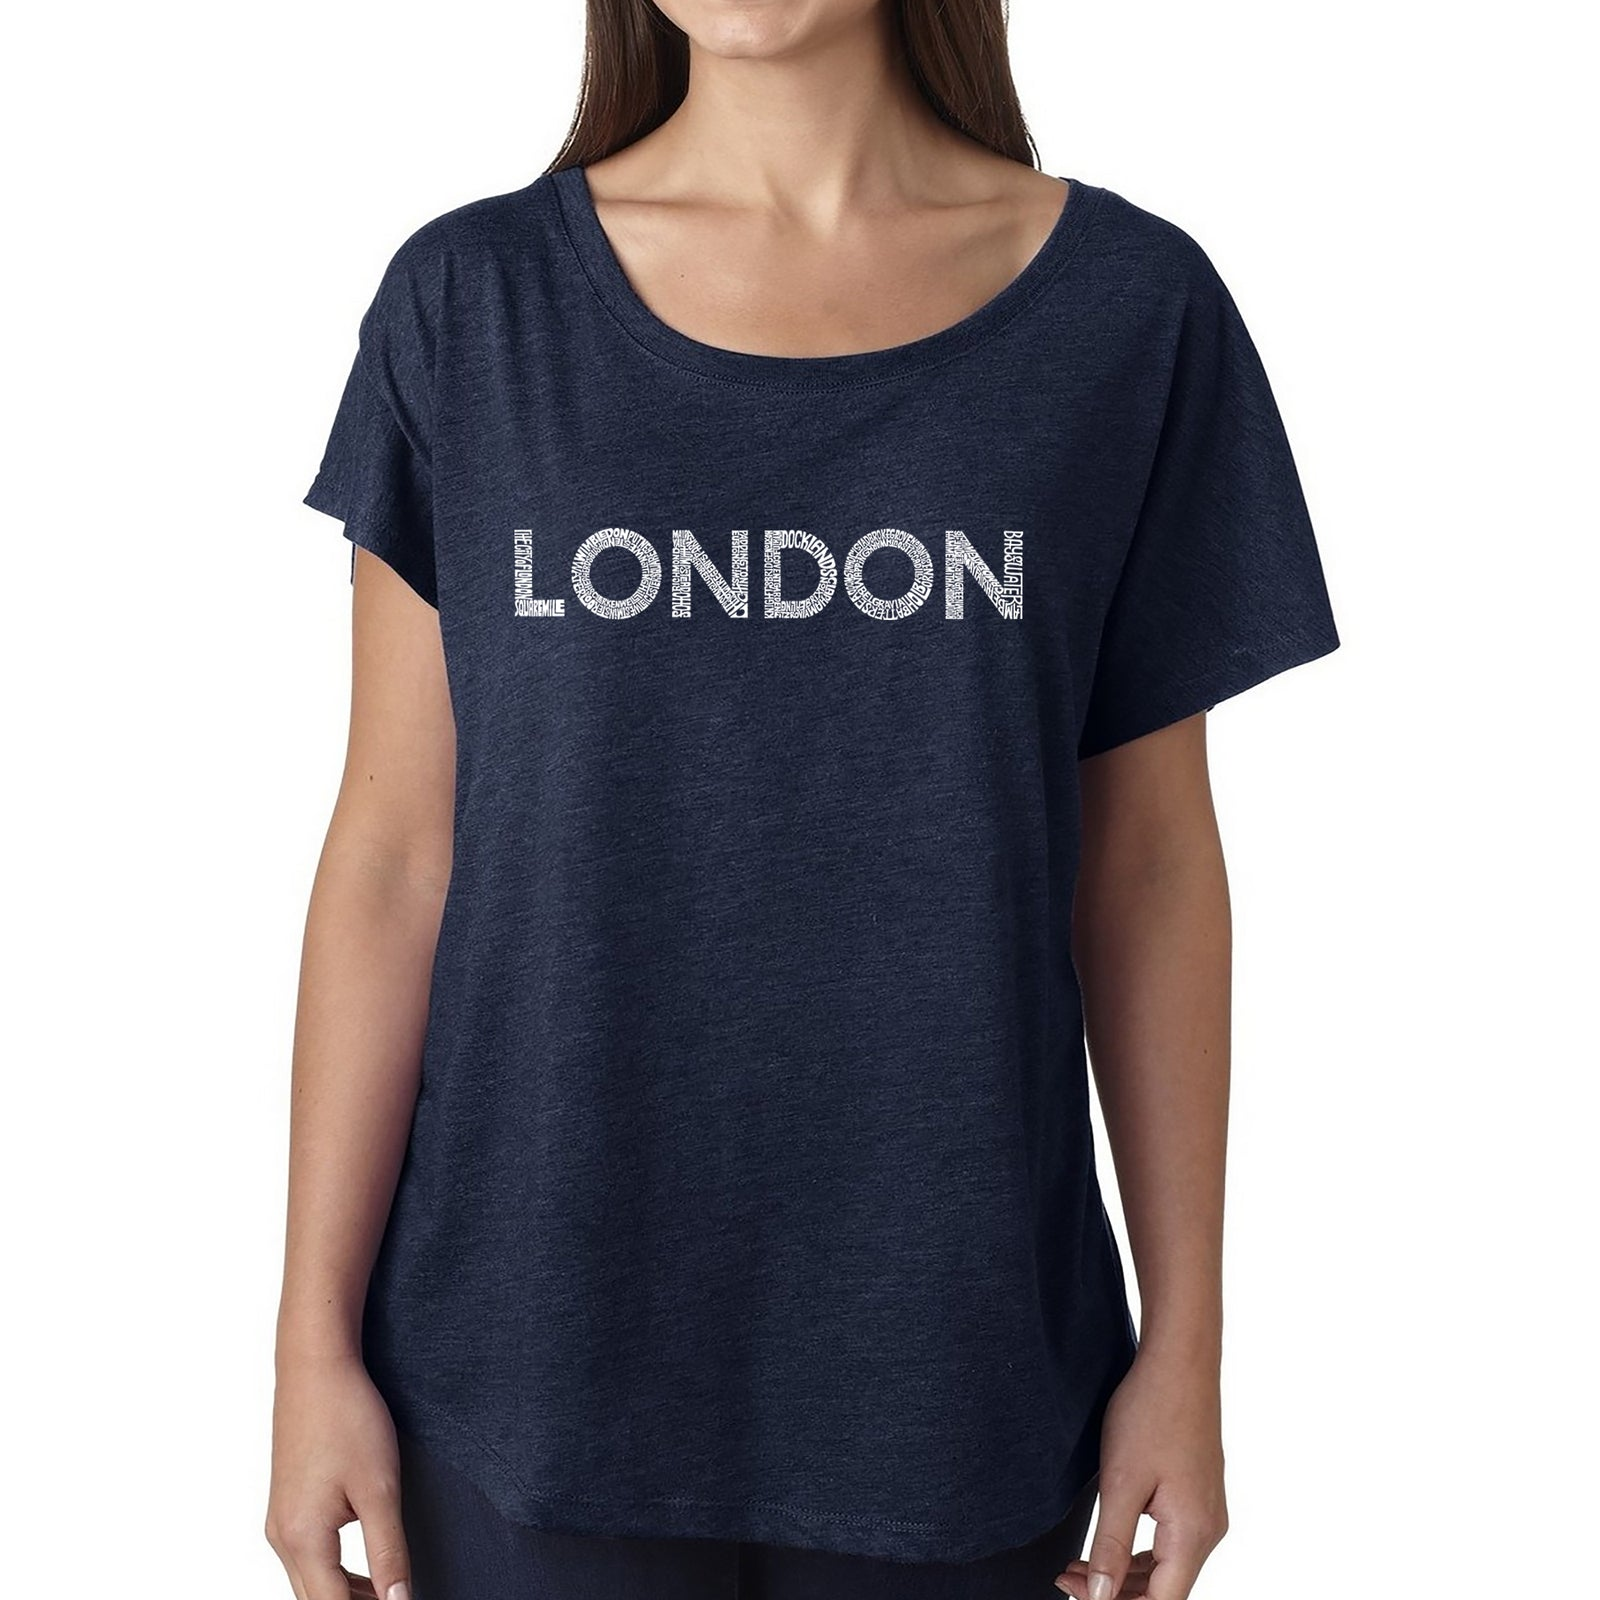 Women's Loose Fit Dolman Cut Word Art Shirt - LONDON NEIGHBORHOODS